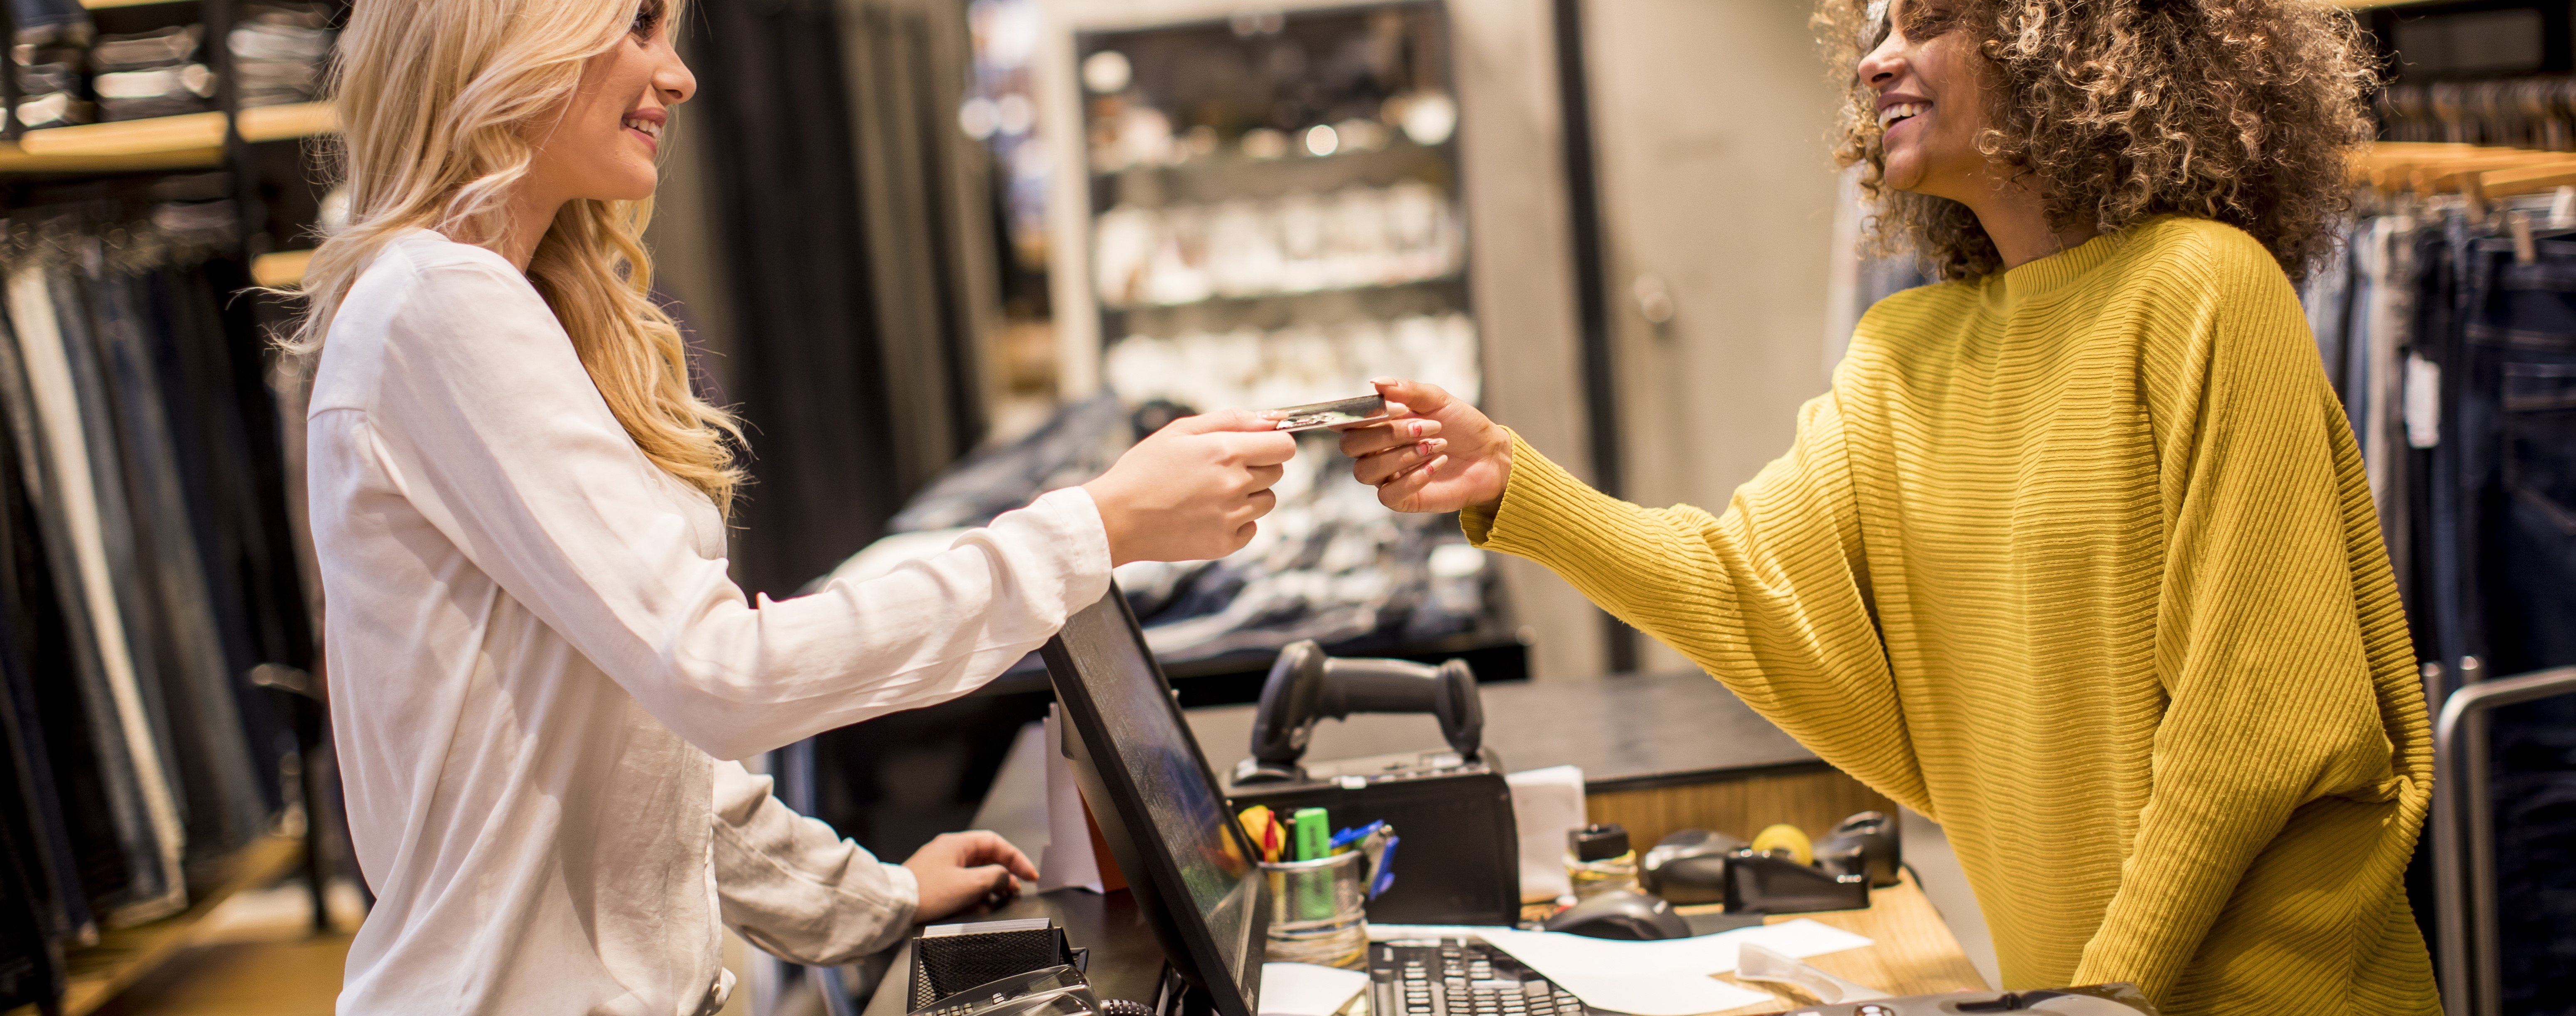 Integrate Square Point of Sale with SAP Business One Cloud ERP Software on the Stellar One Cloud Platform